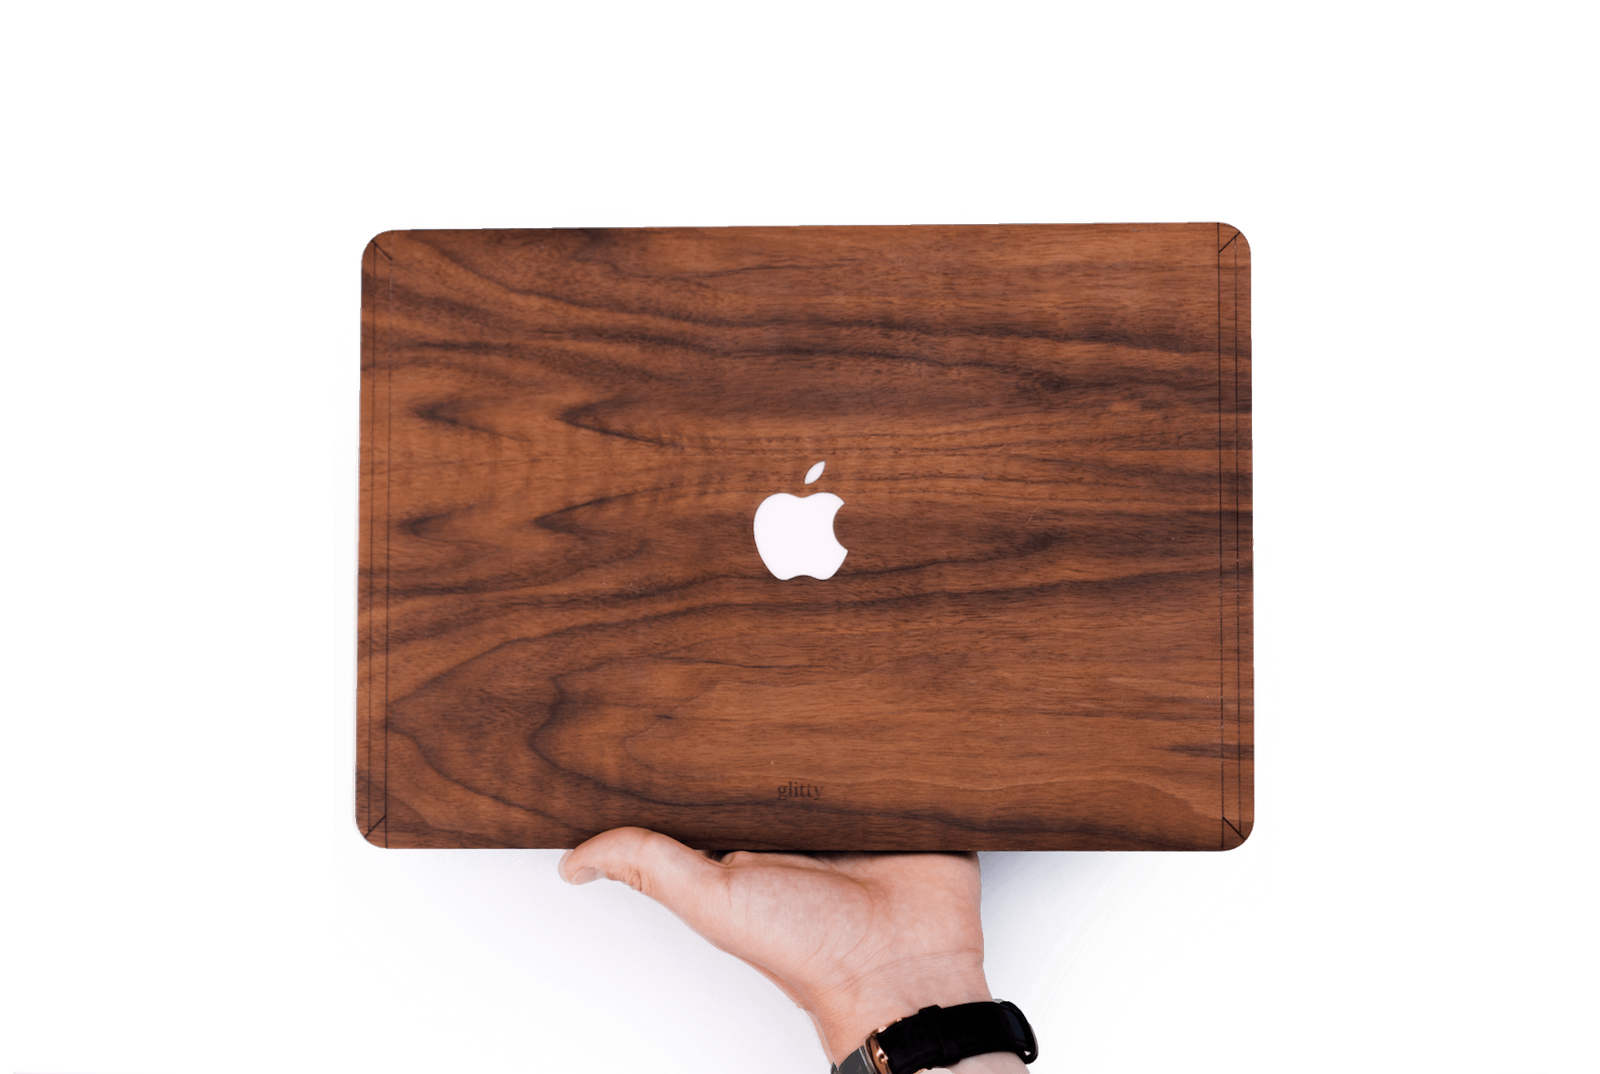 Walnut – Glitty for MacBook